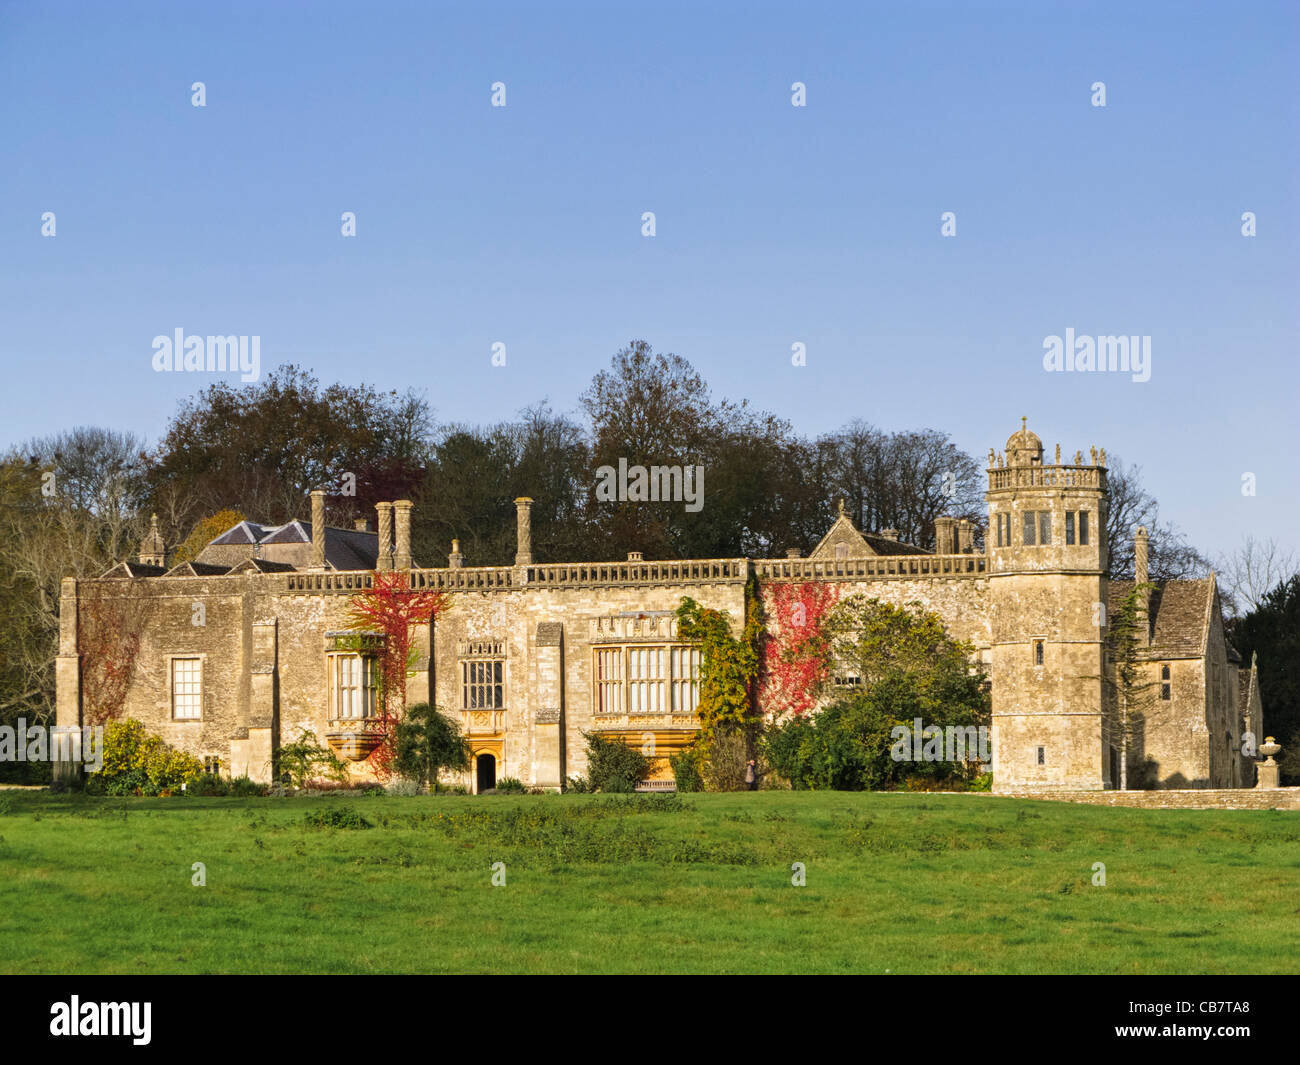 Lacock Abbey - country house in Wiltshire, South West England, UK - Stock Image